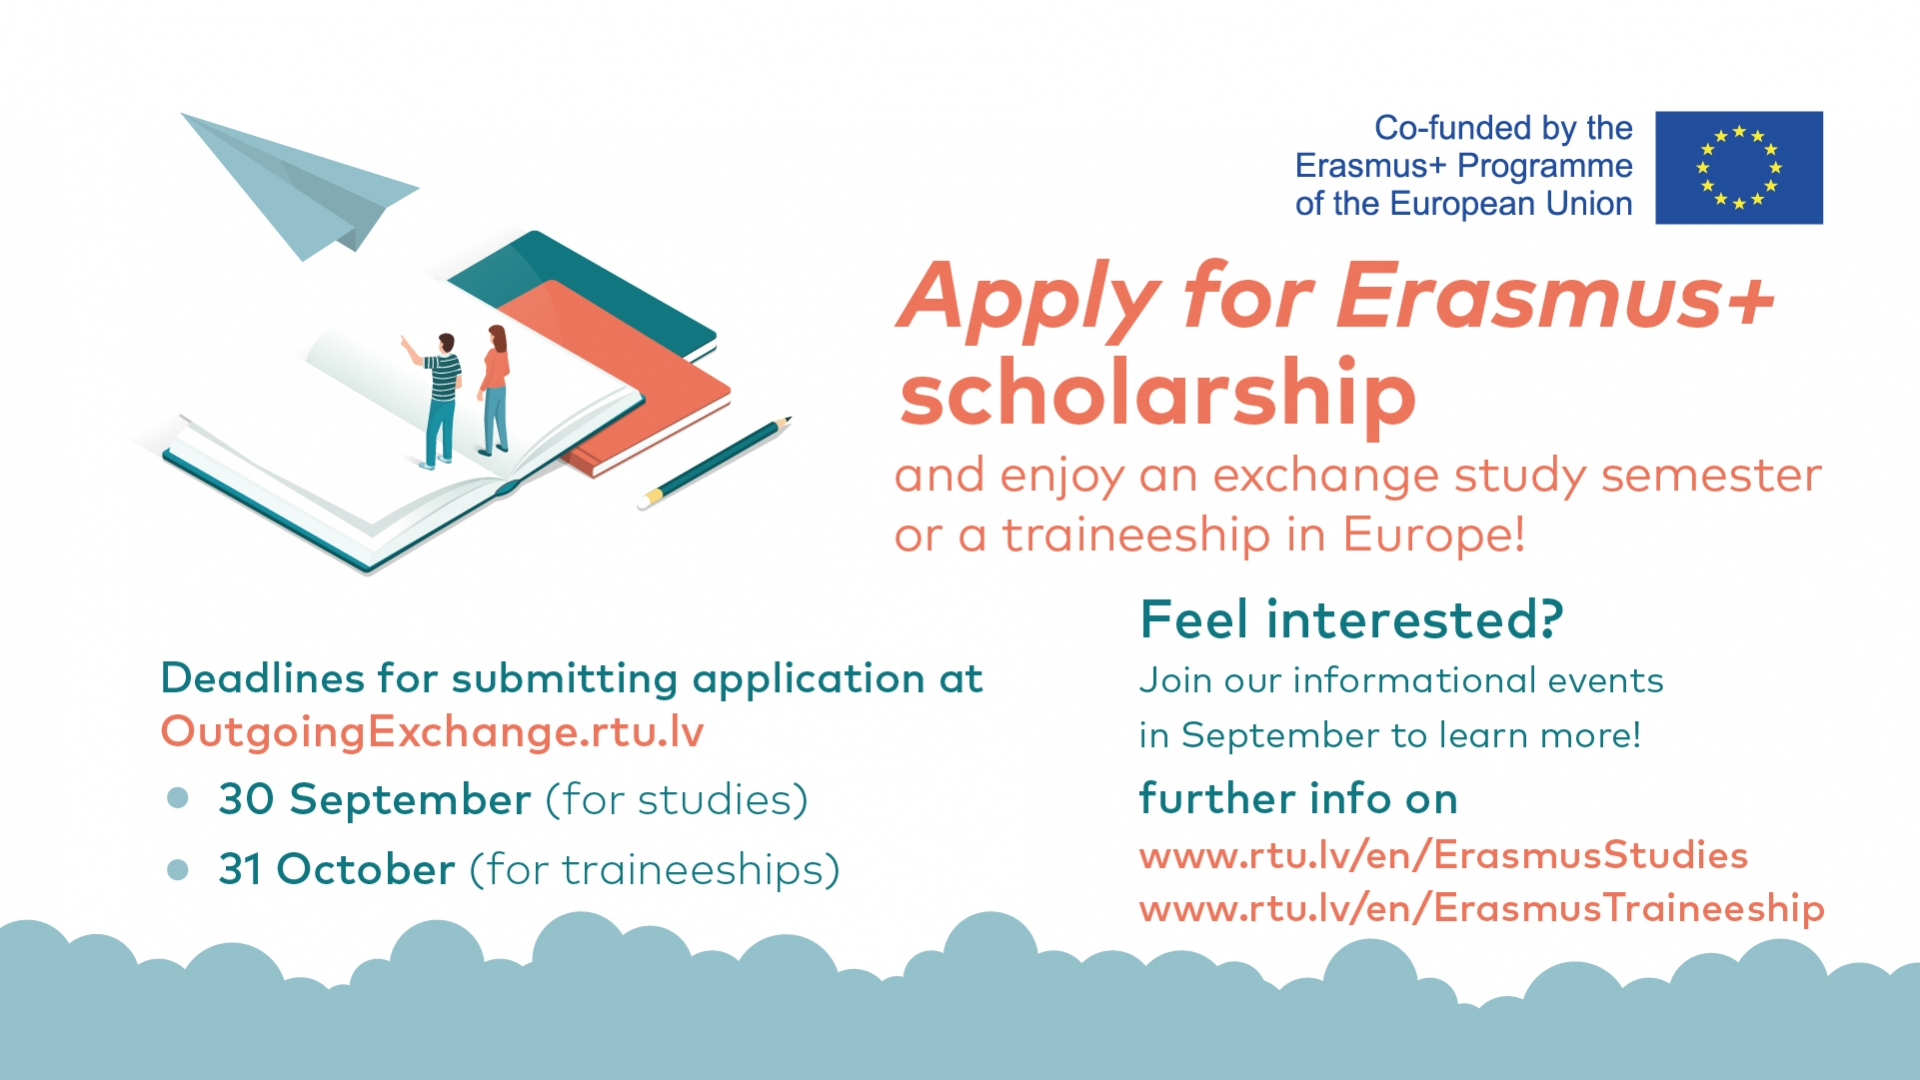 Last day to apply for the Erasmus+ scholarship